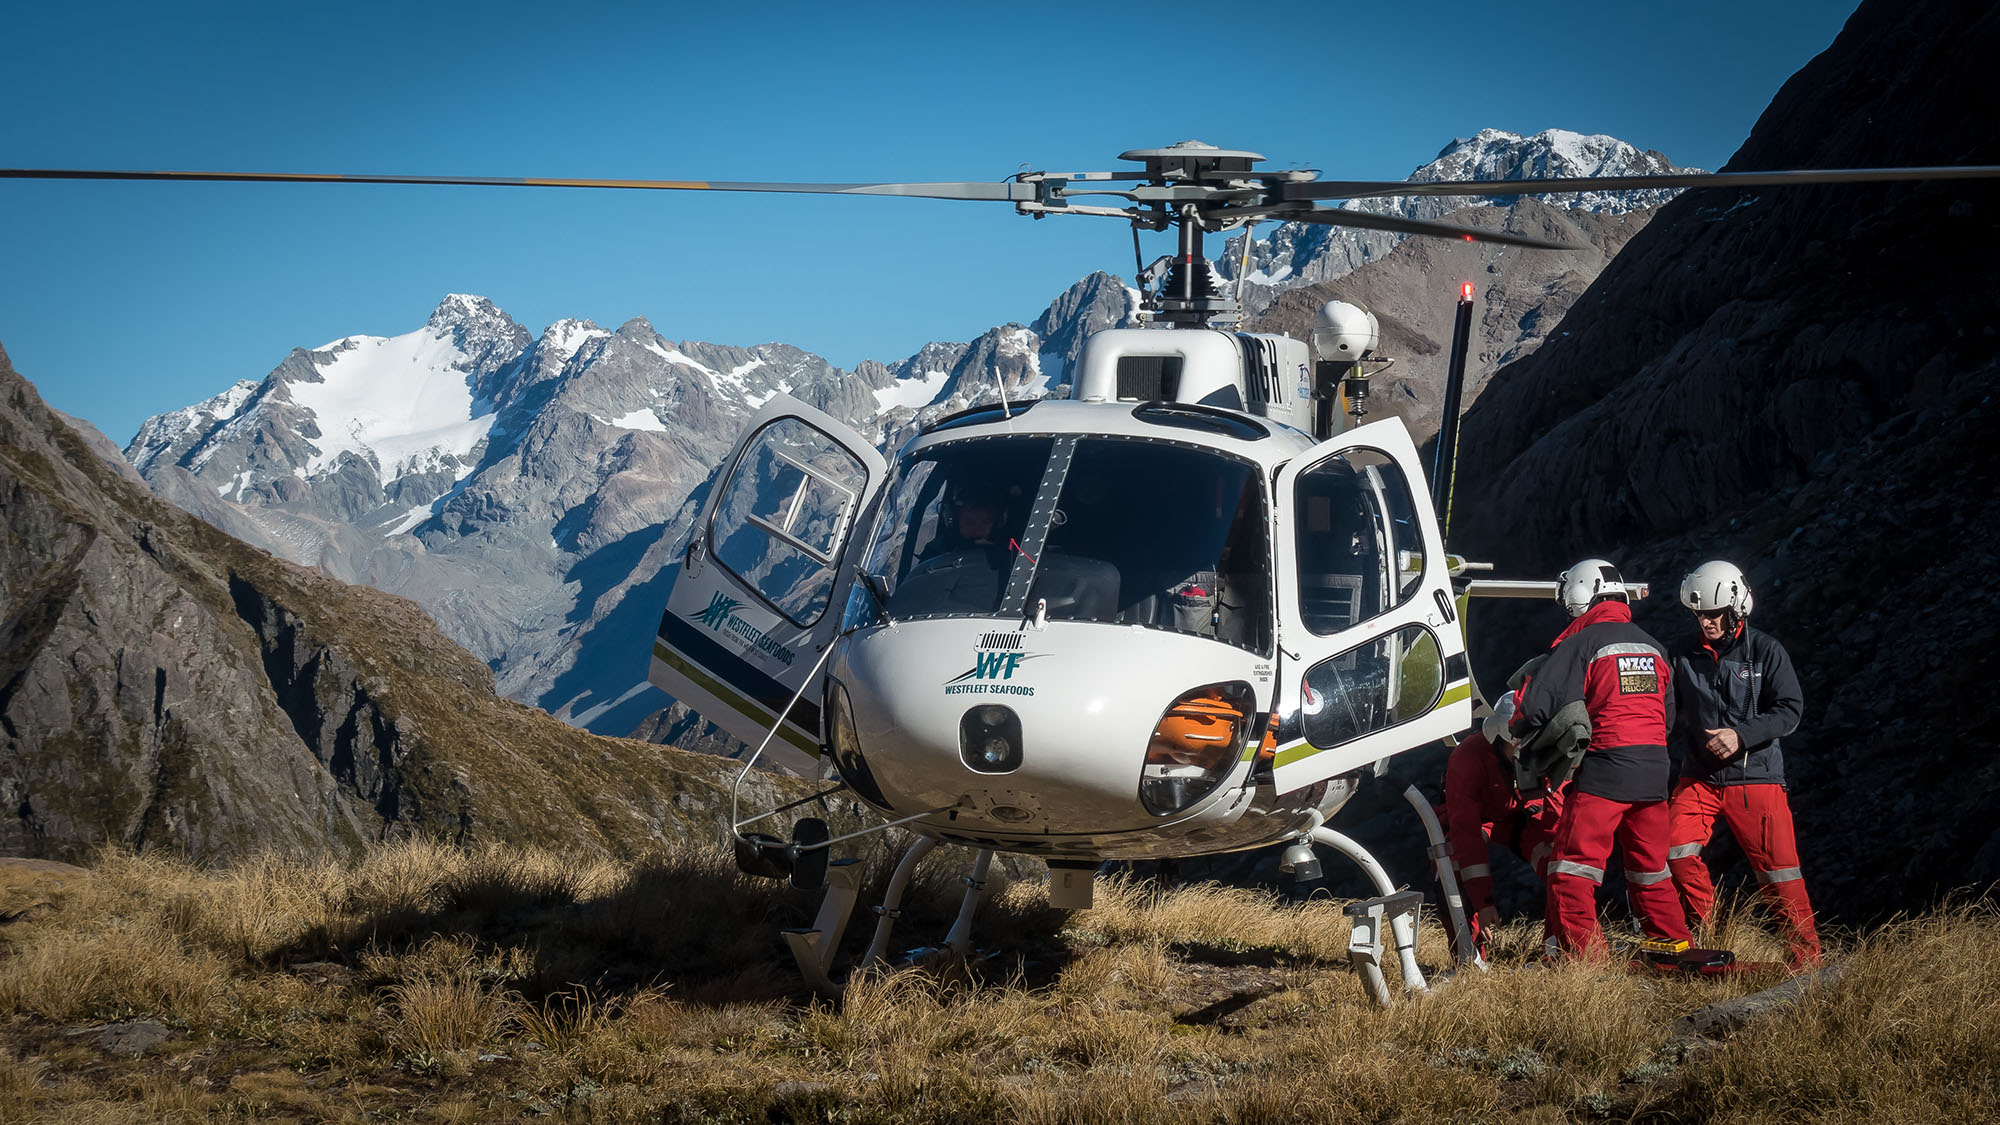 ZK-HGH at Waimakariri Falls Hut during beacon search operation.